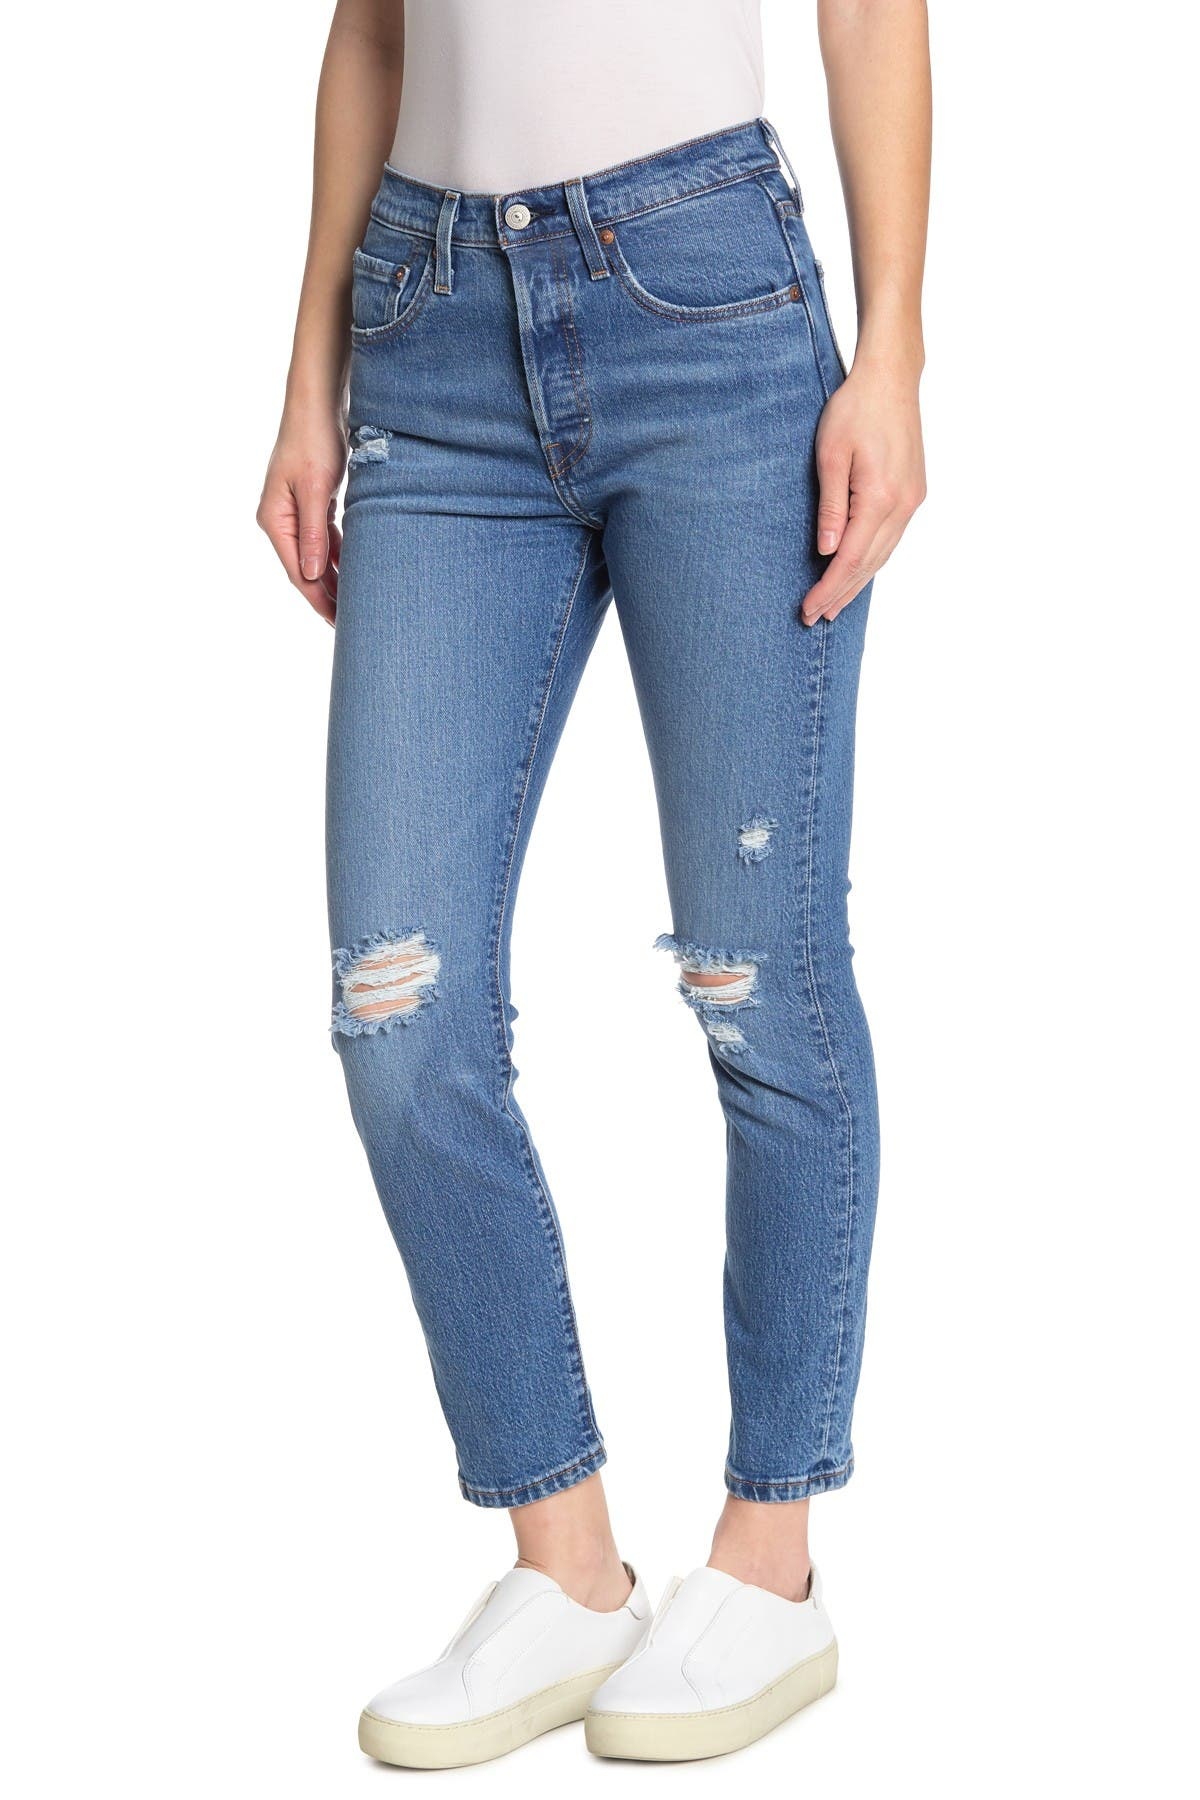 Image of Levi's 501 Distressed  Skinny Jeans